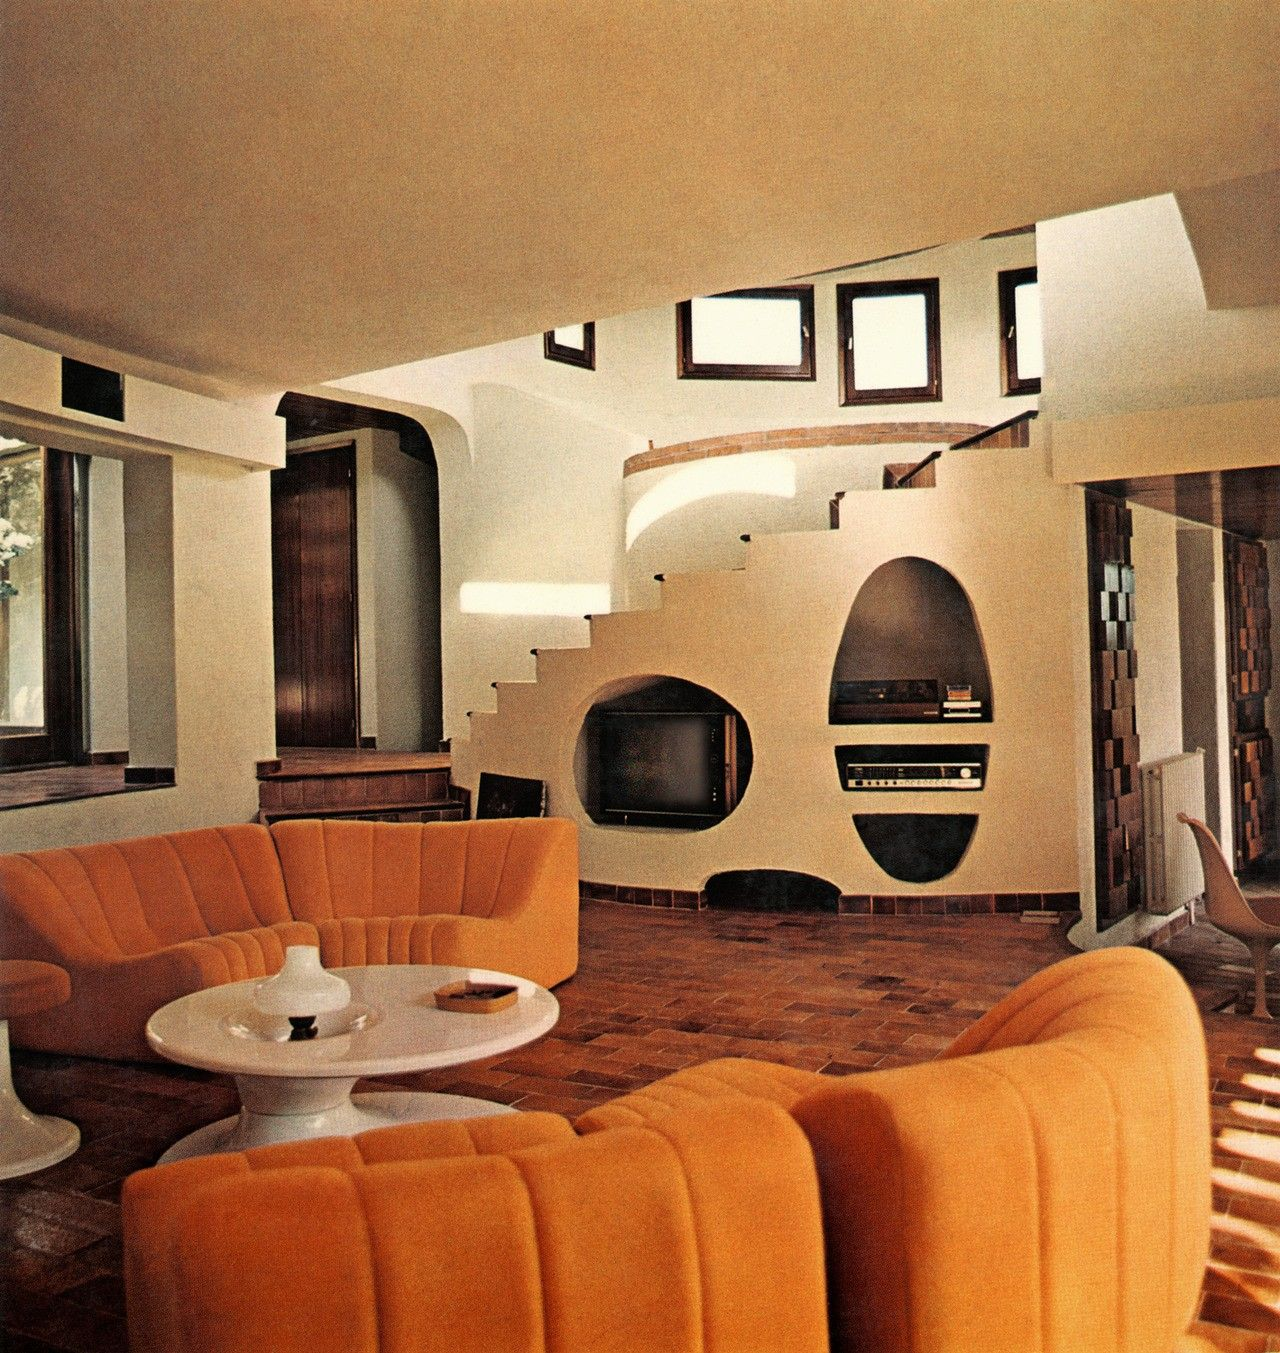 Find This Pin And More On Interior Design (50s,60s,70s,80s Only) By  Sophiastarck.